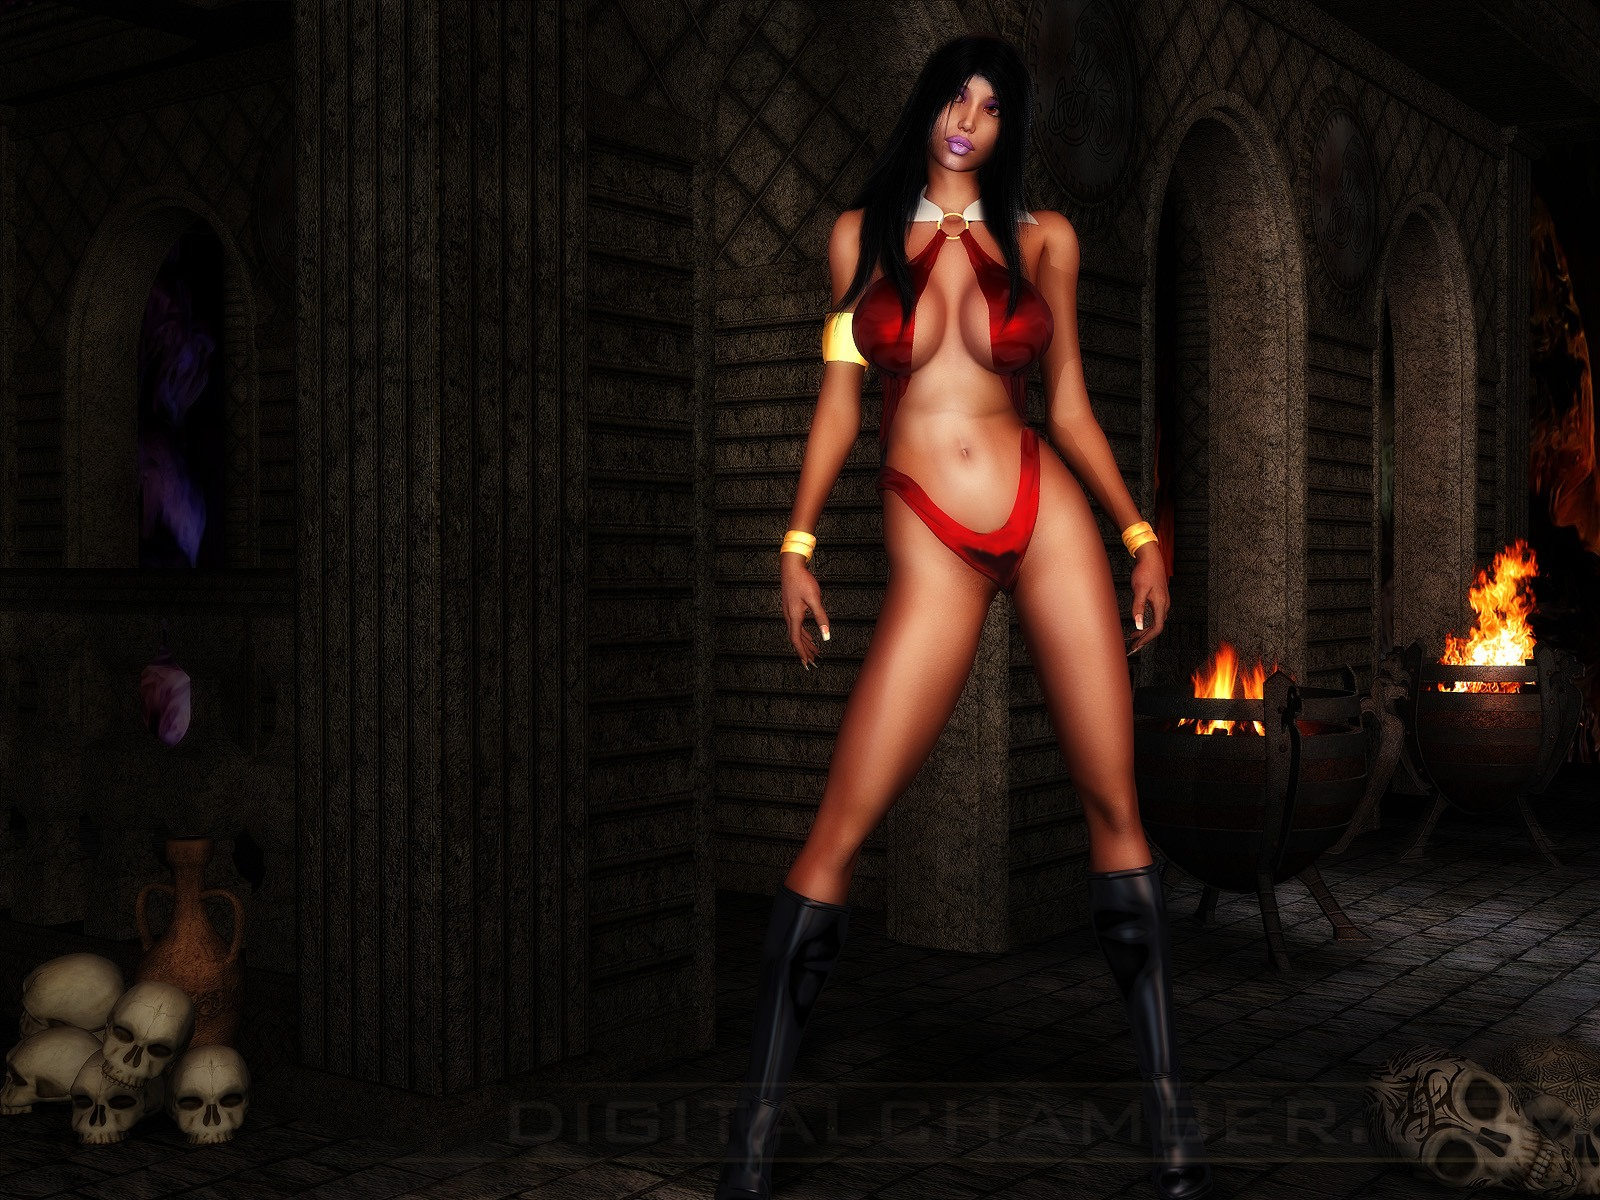 Nude vampire girls wallpapers sexy photo